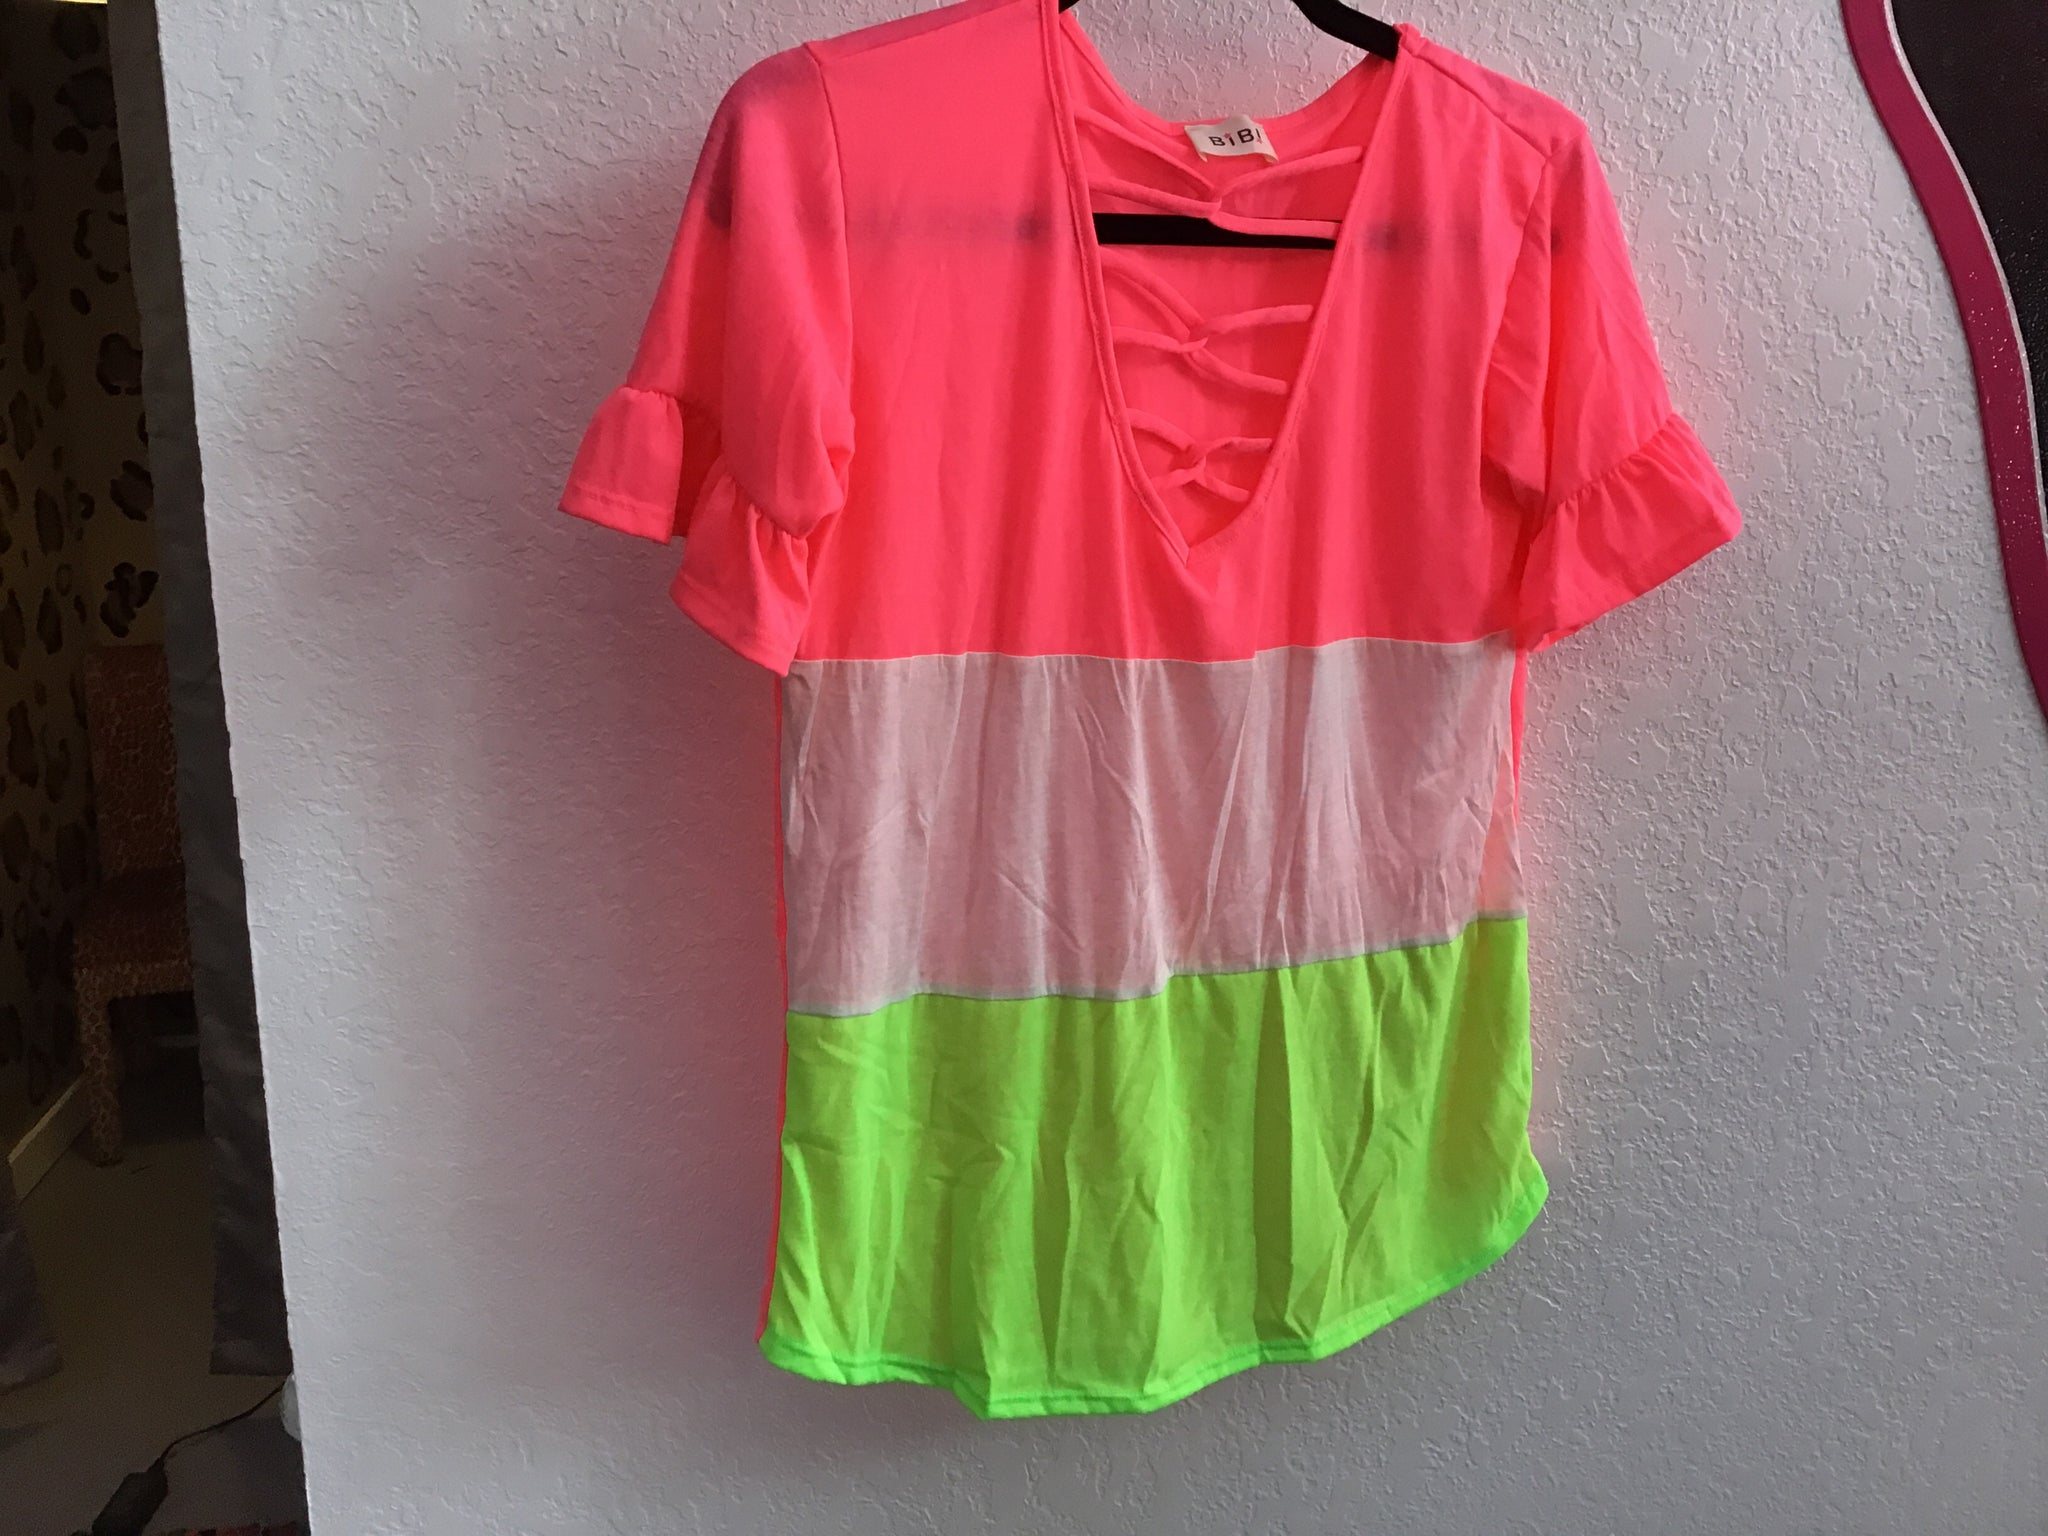 Neon Cross Top